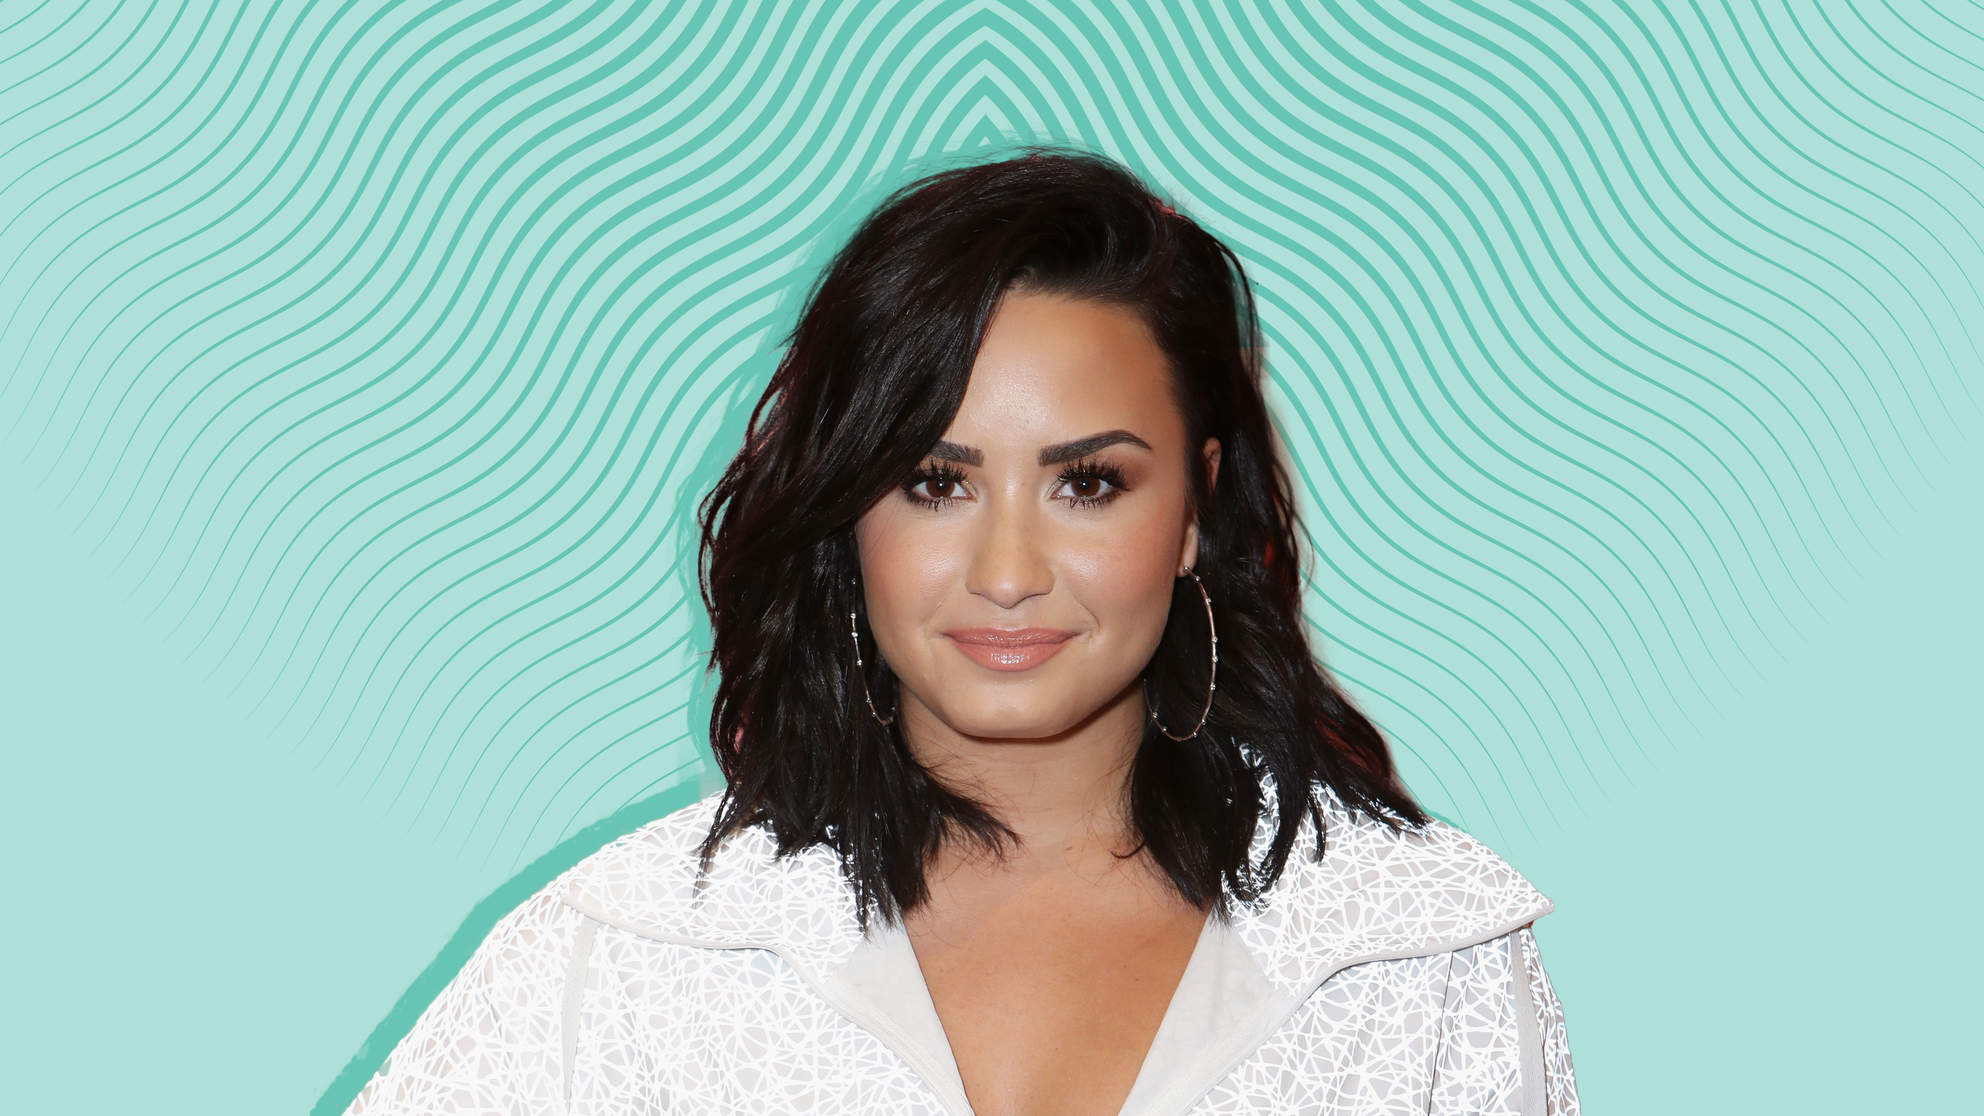 Demi Lovato Is Rocking a New Hair Color for Fall—and It's Not What You'd Expect